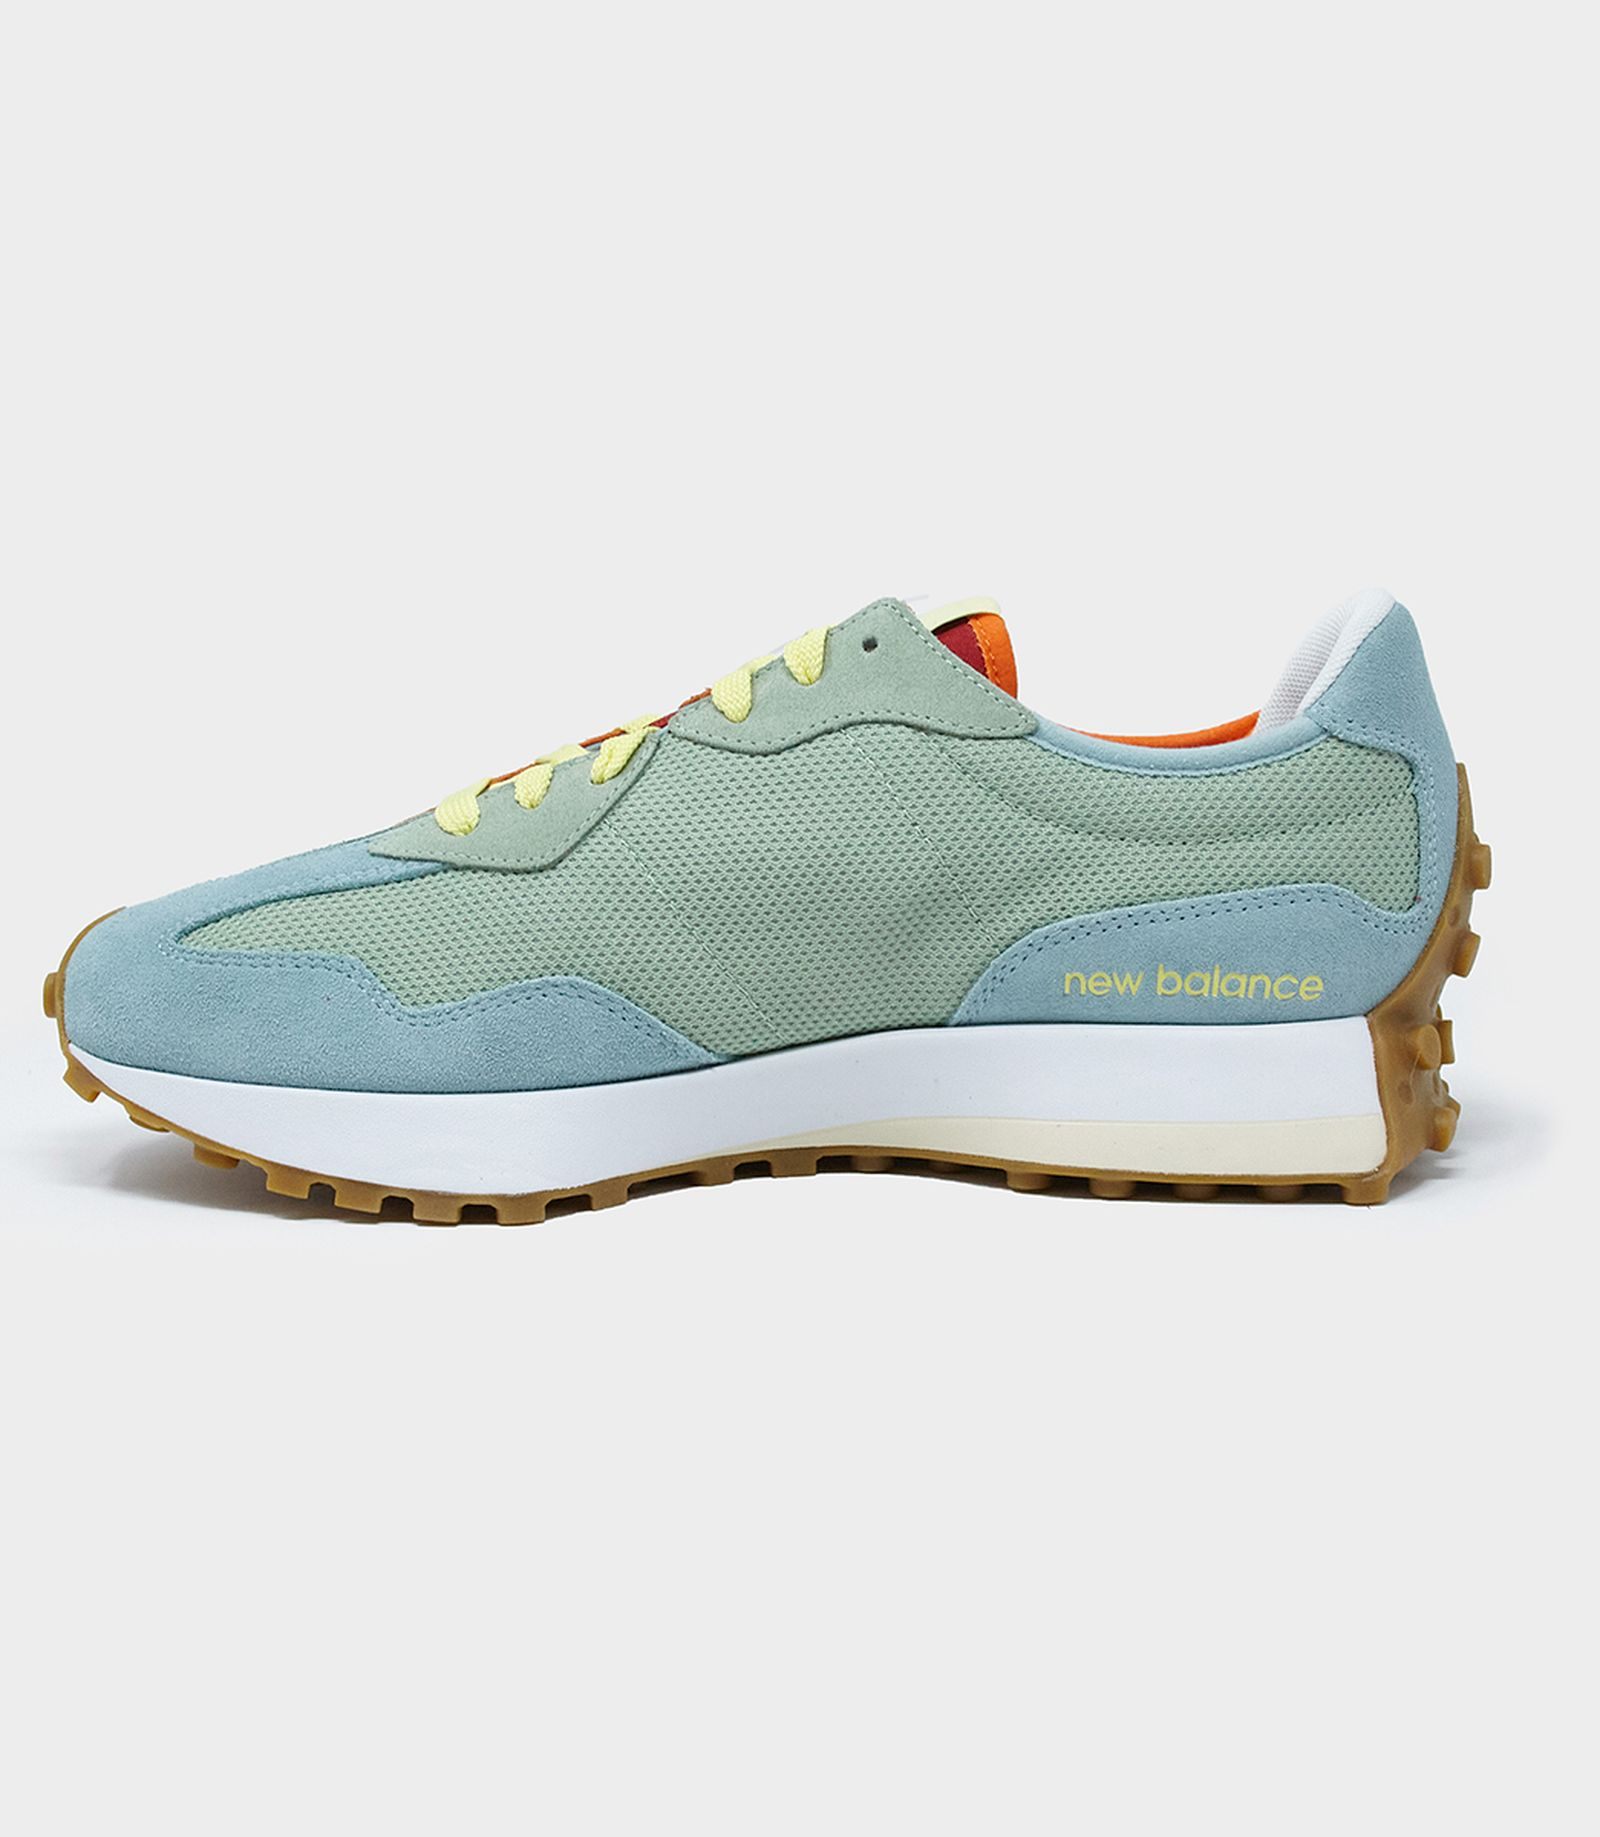 todd-snyder-new-balance-327-farmers-market-release-date-price-1-05